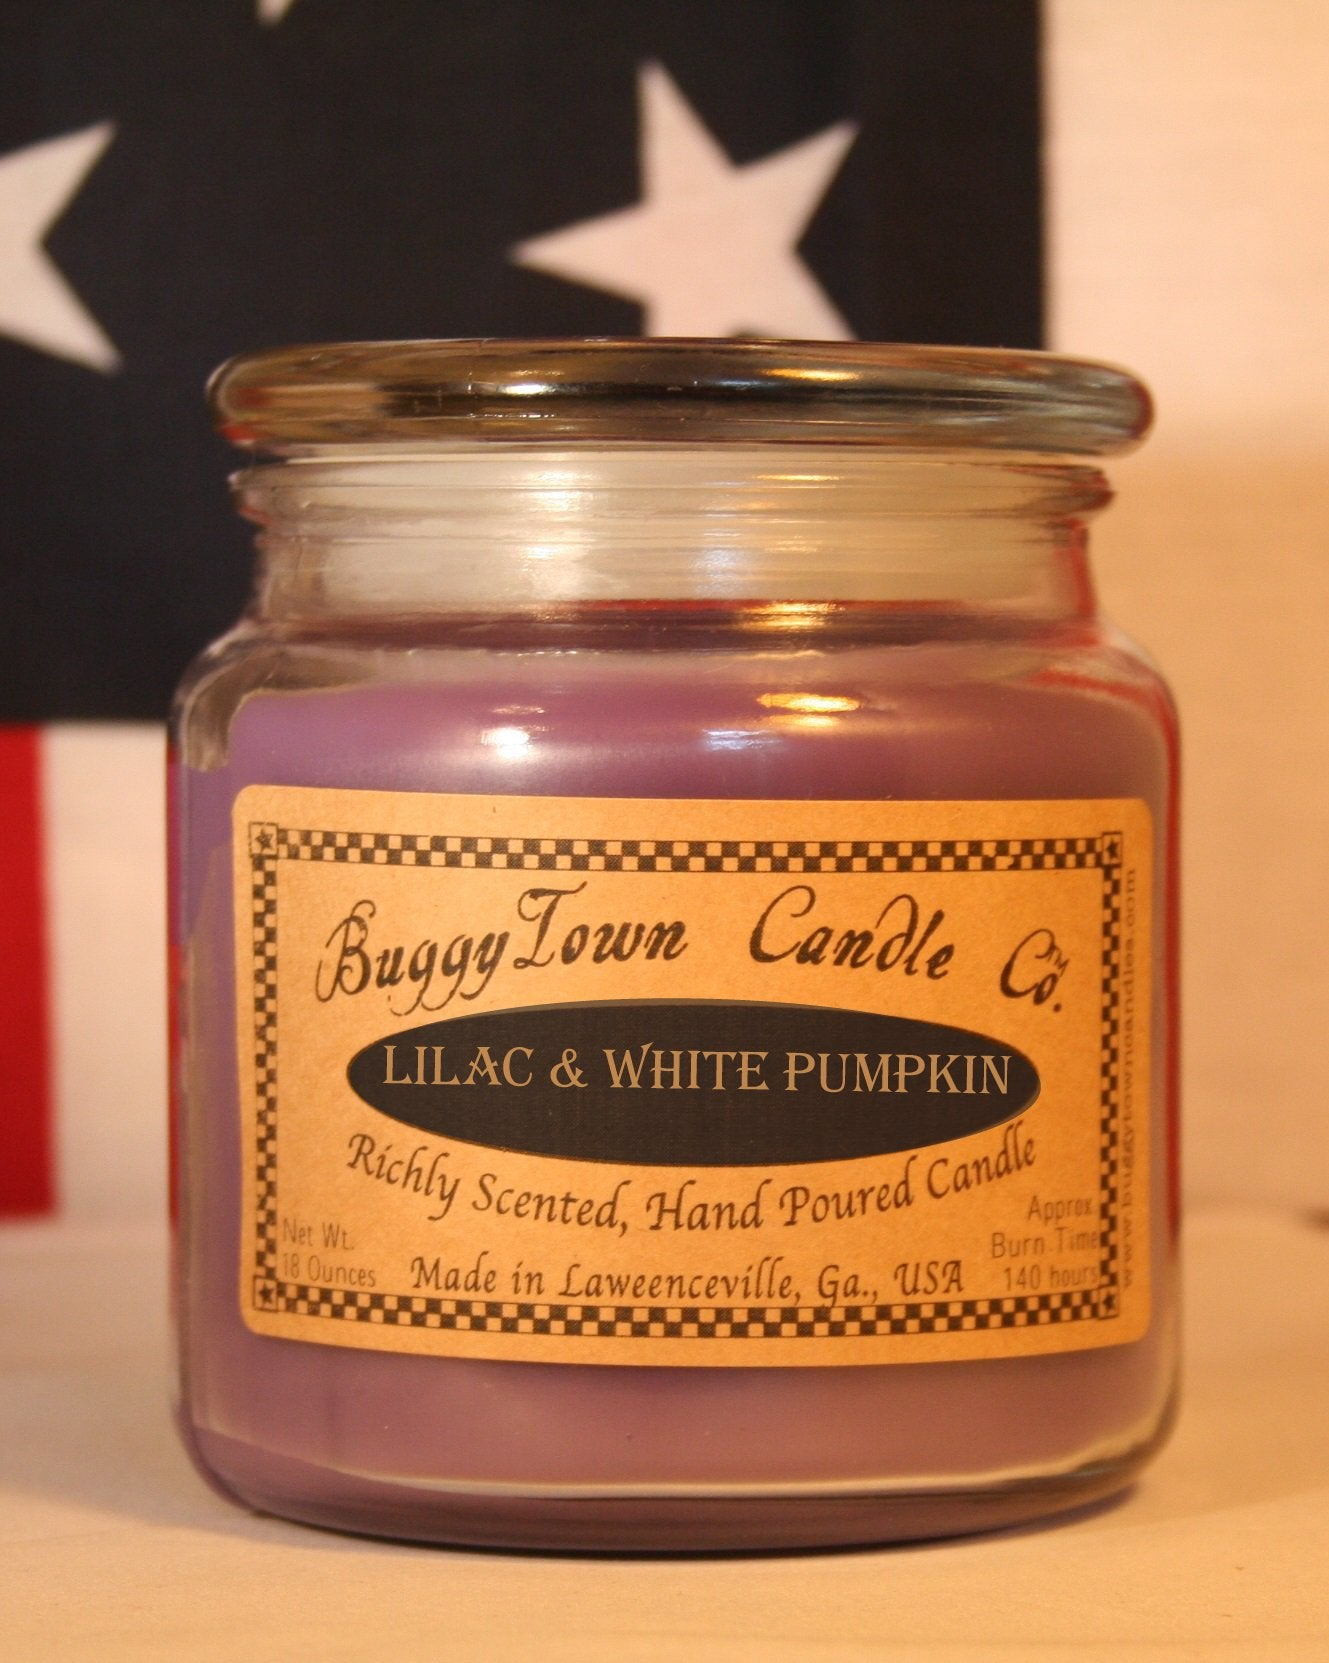 Lilac and white pumpkin Candles